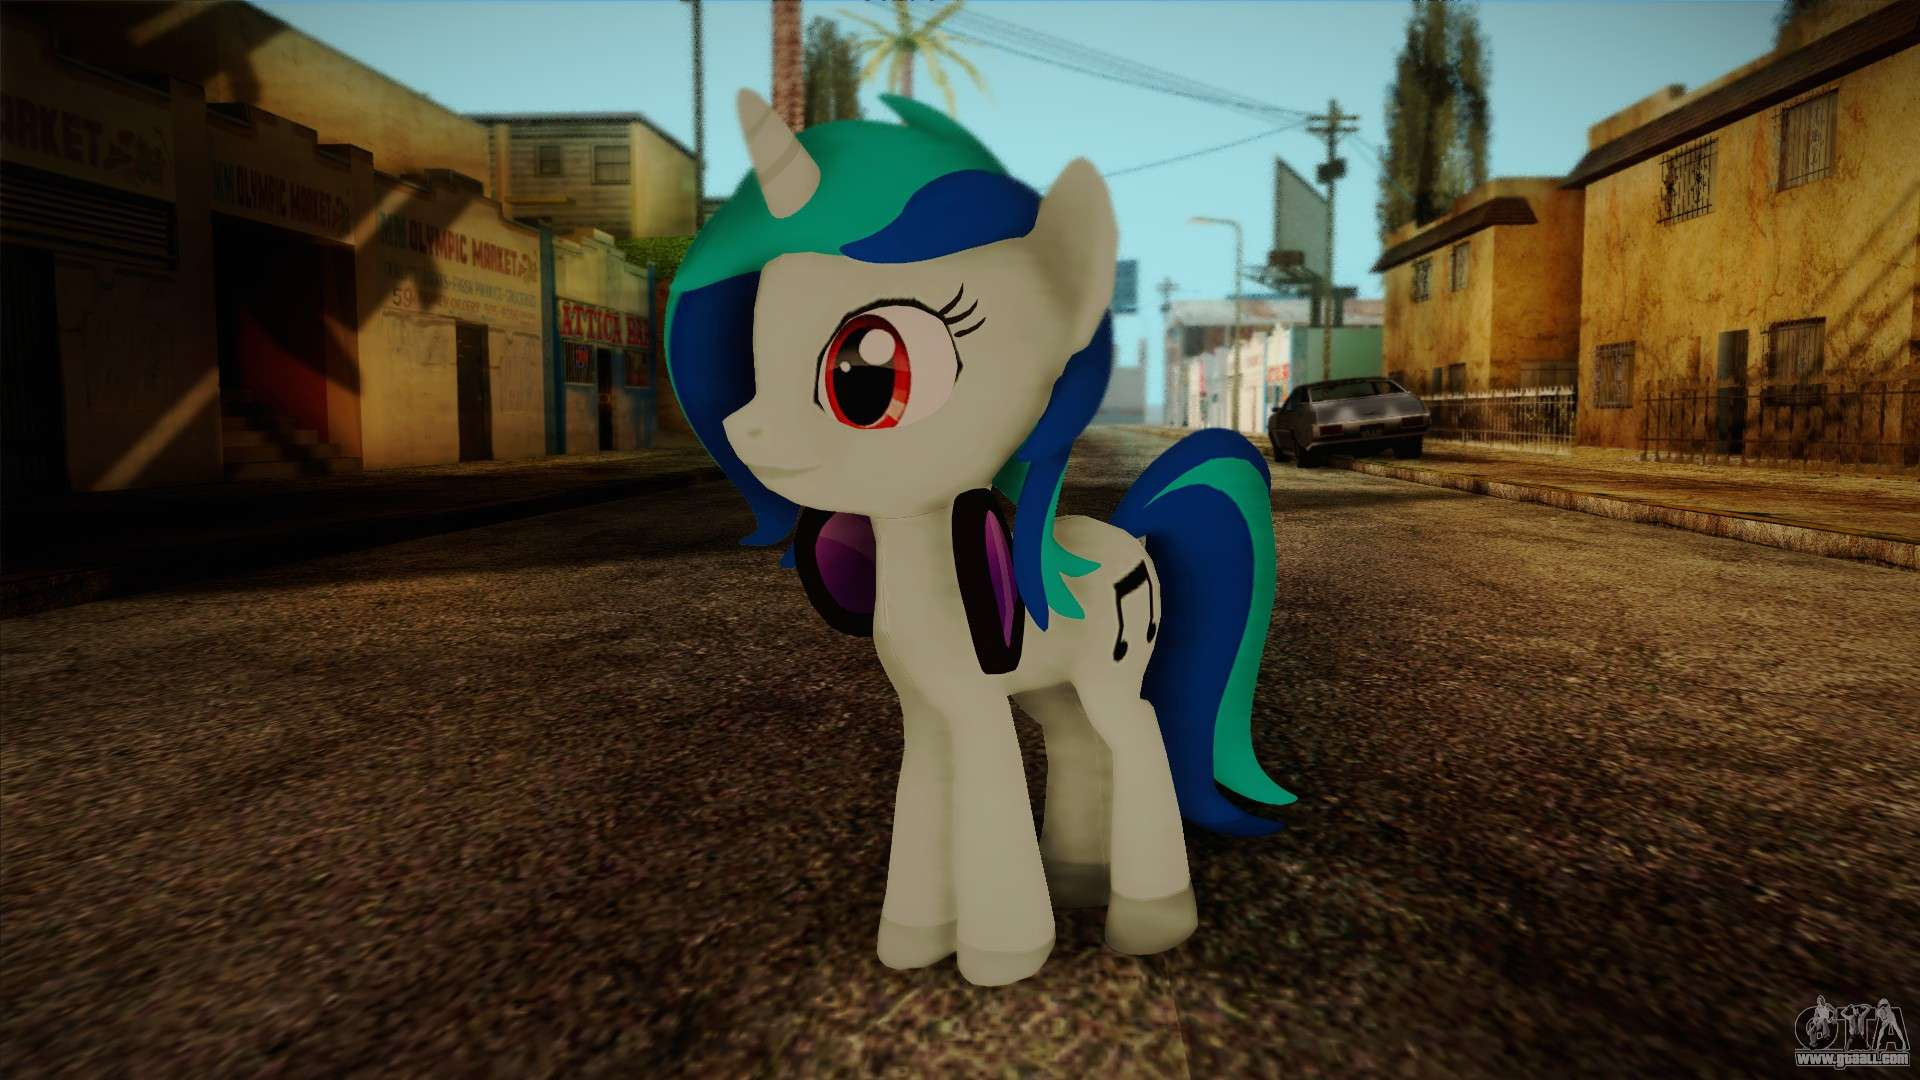 Vinyl Scratch From My Little Pony For Gta San Andreas